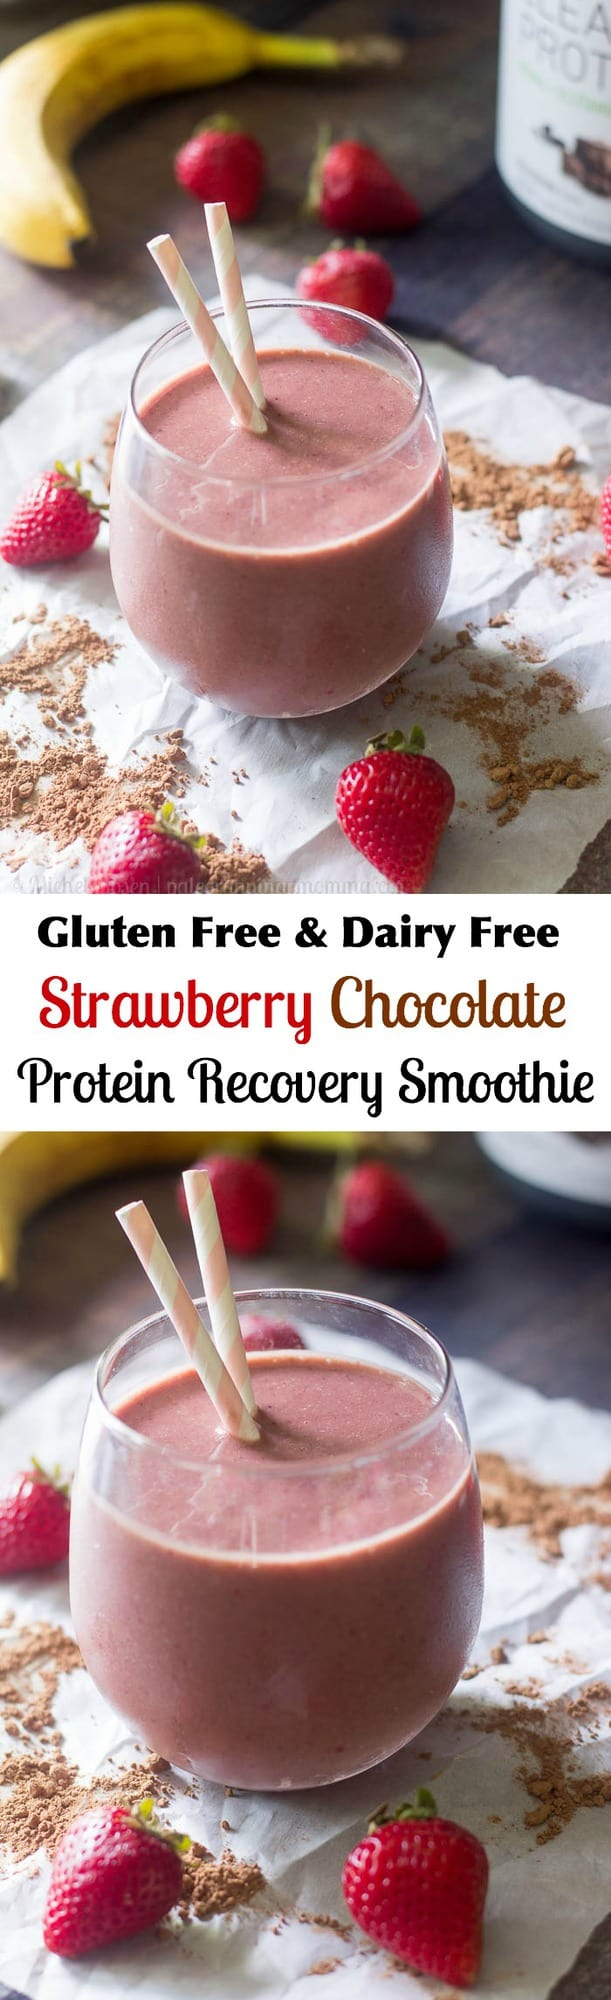 Strawberry Chocolate Protein Recovery Smoothie with @Vegafueled Chocolate Protein - dairy free, gluten free #ad